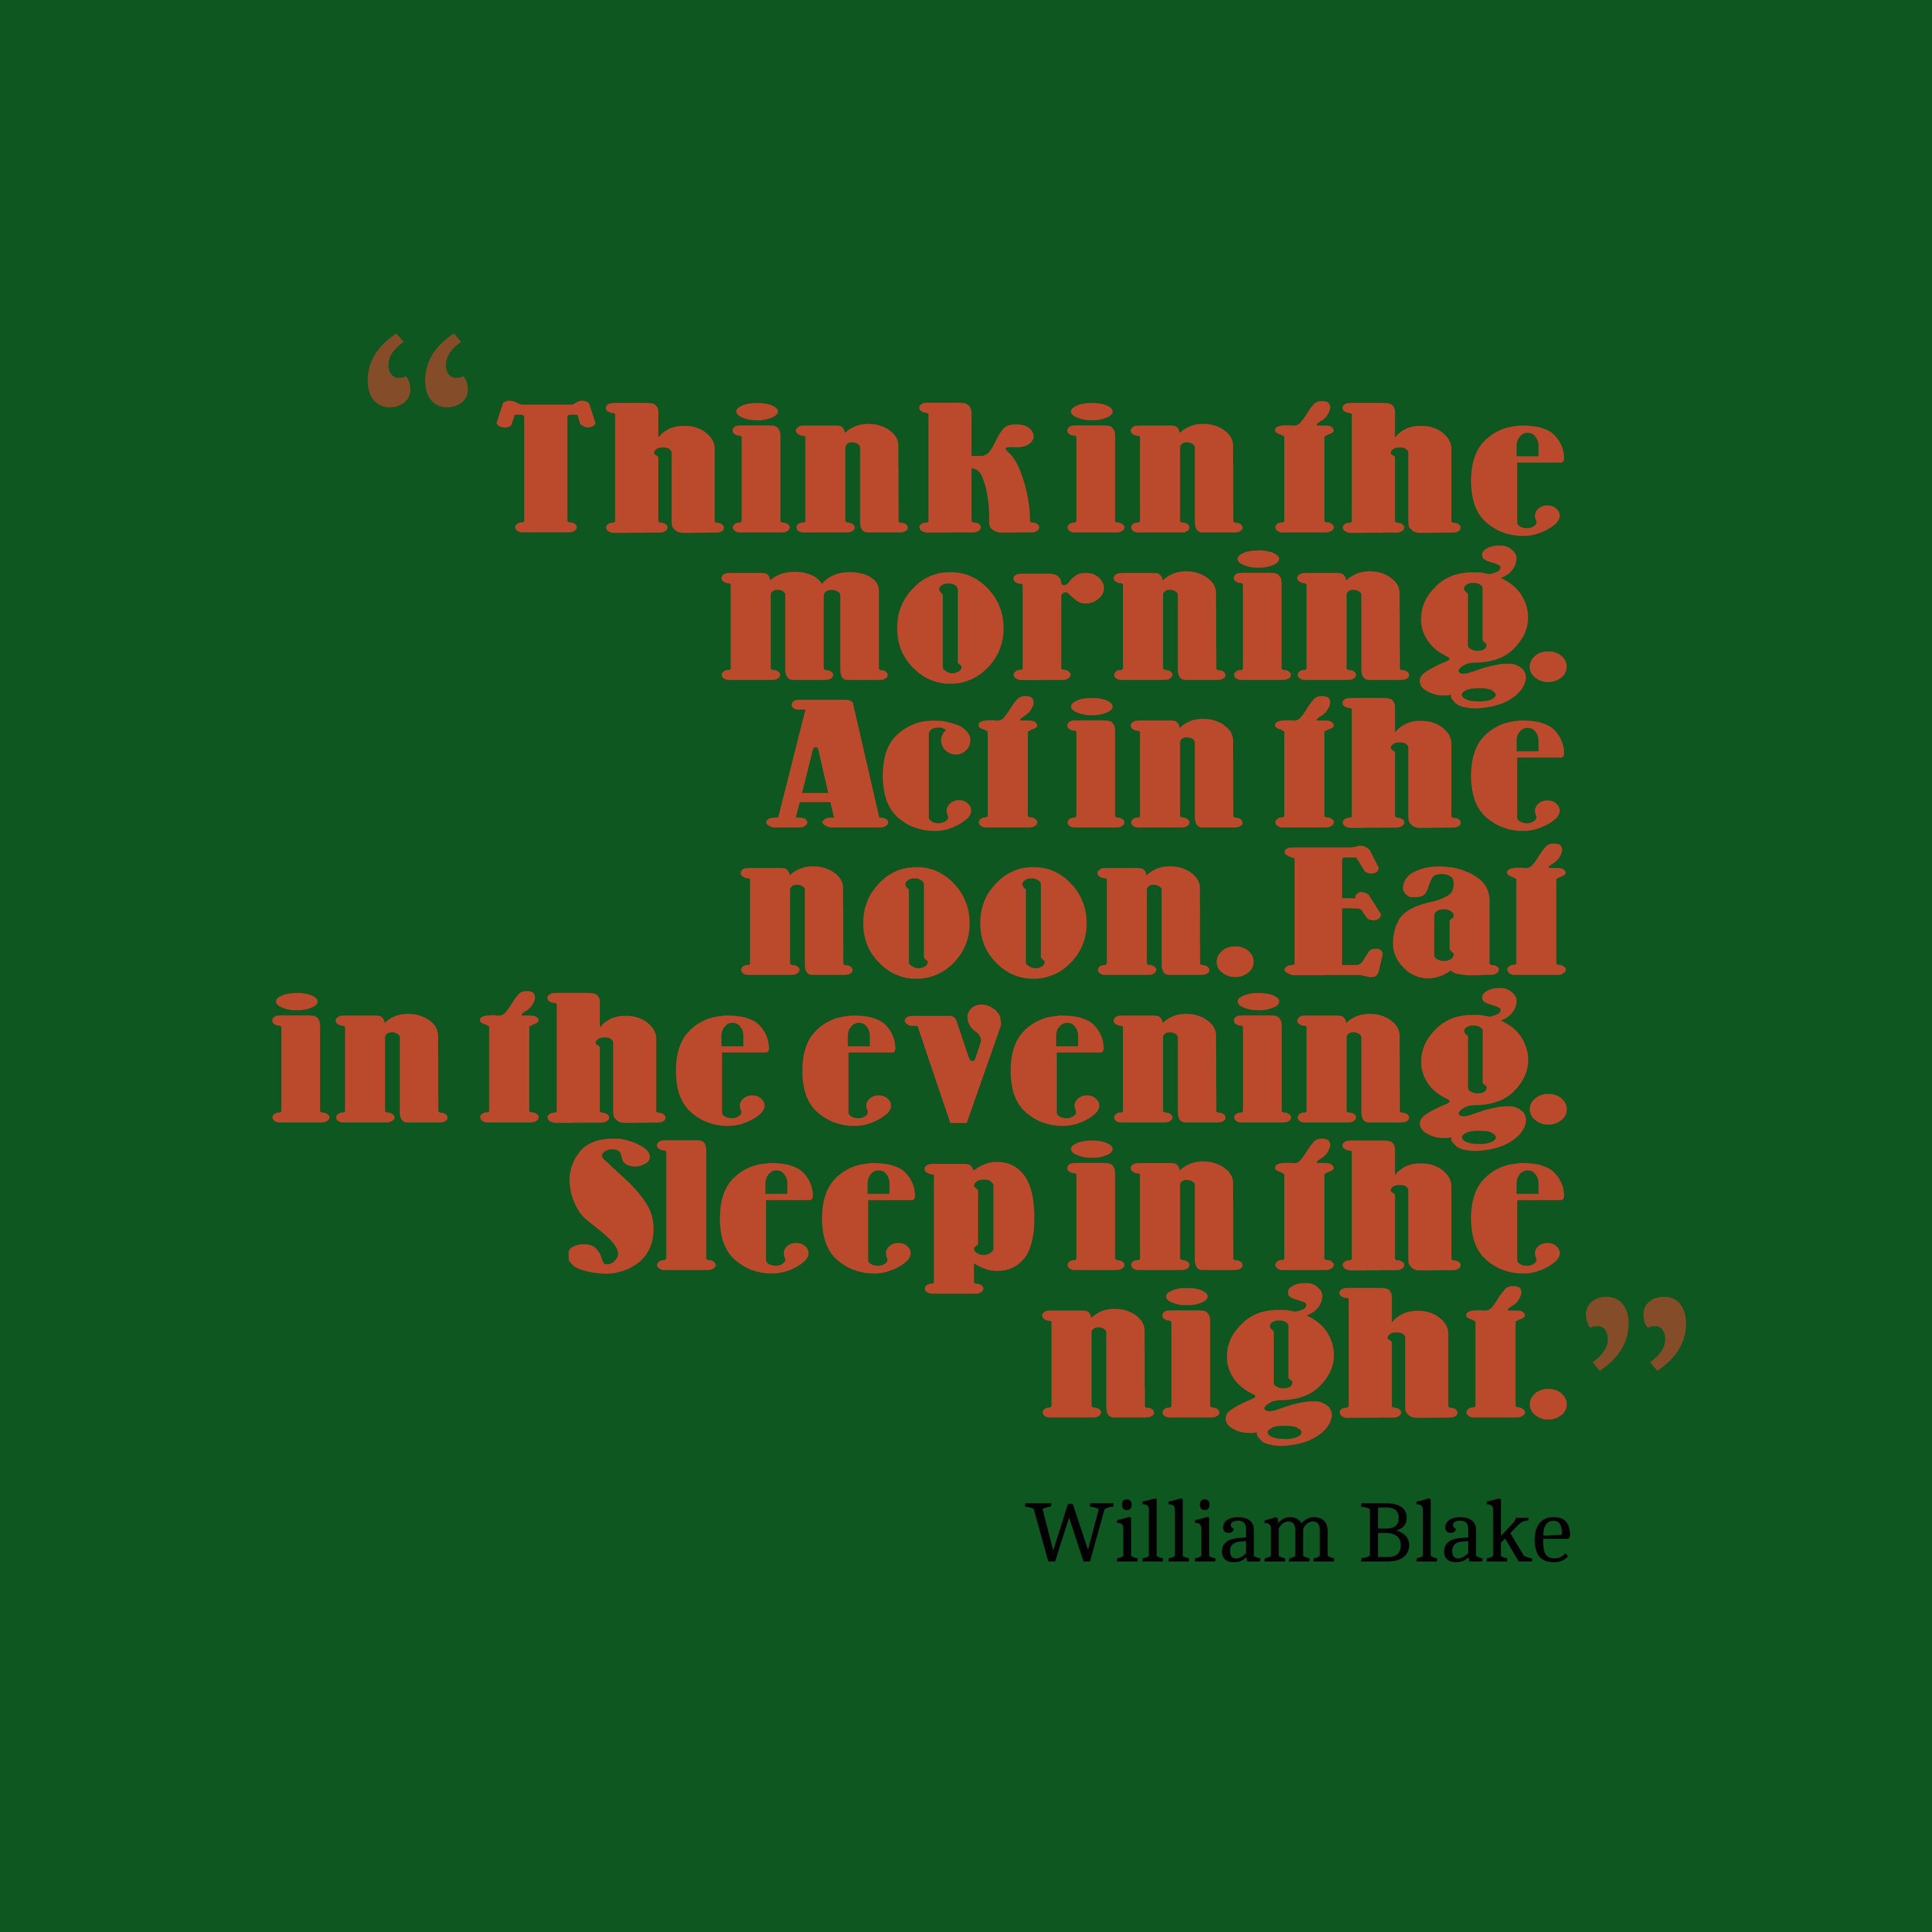 William Blake Quote About Morning